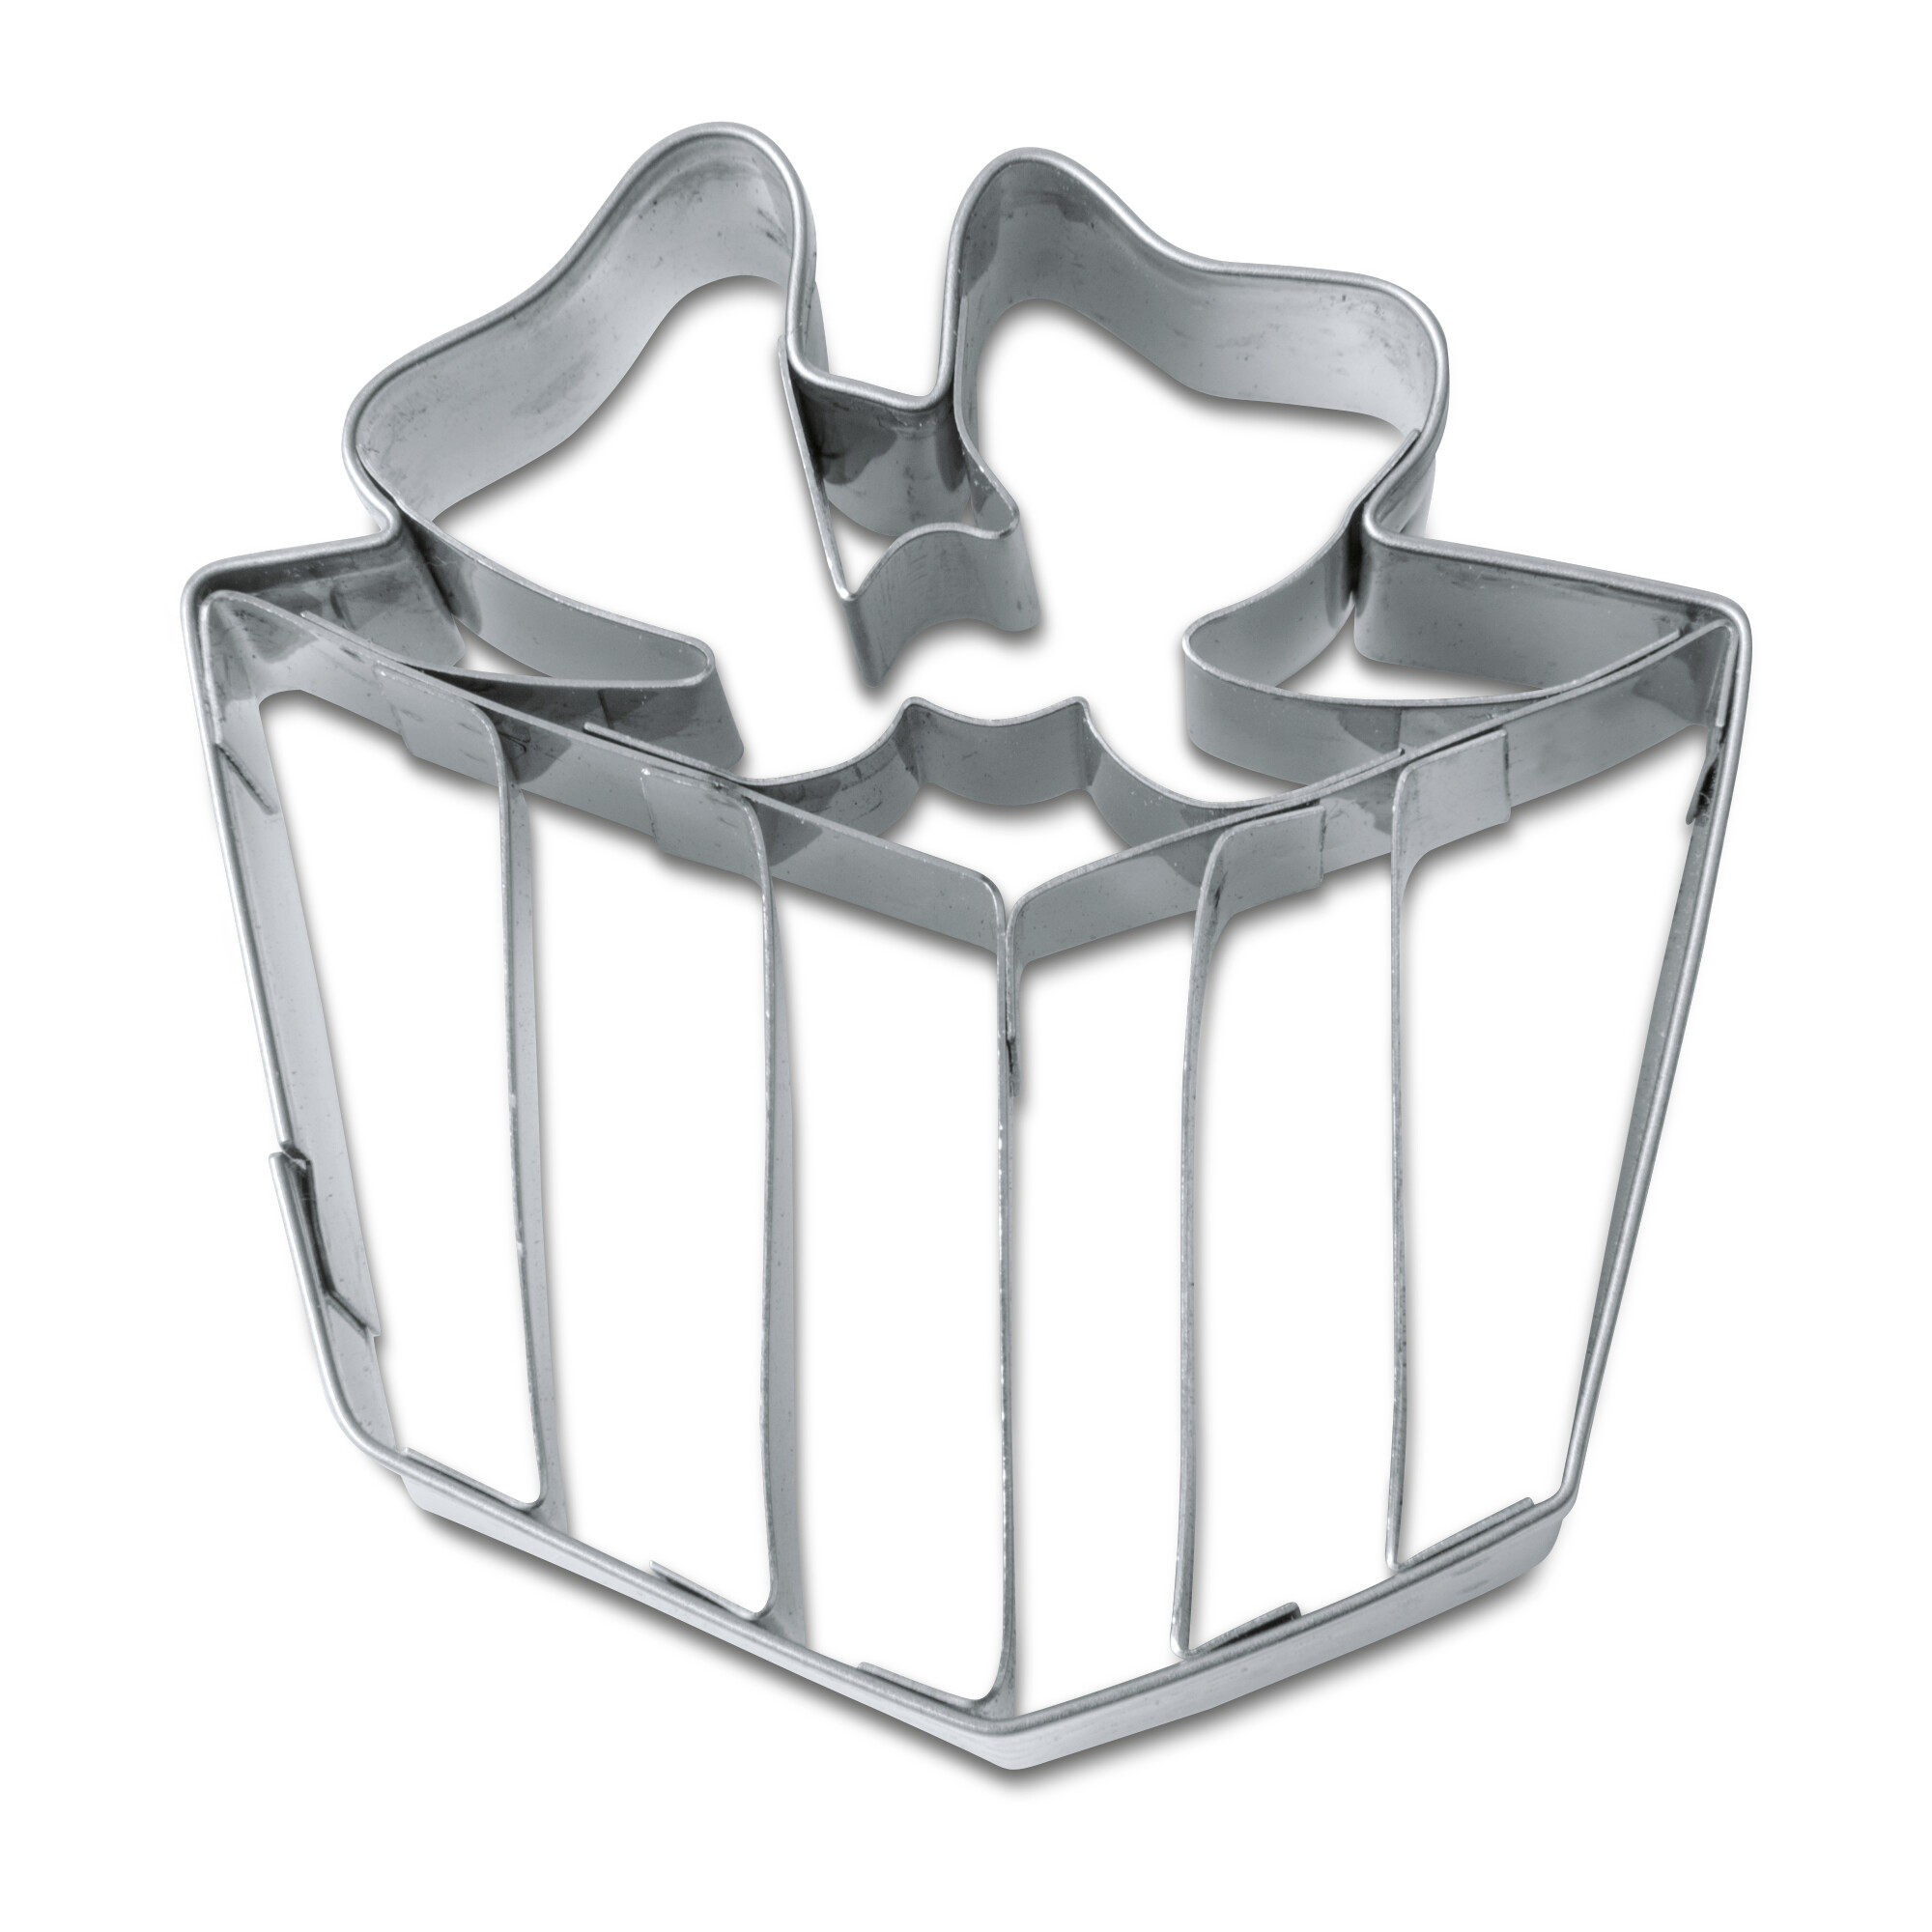 Cookie cutter with stamp - Present